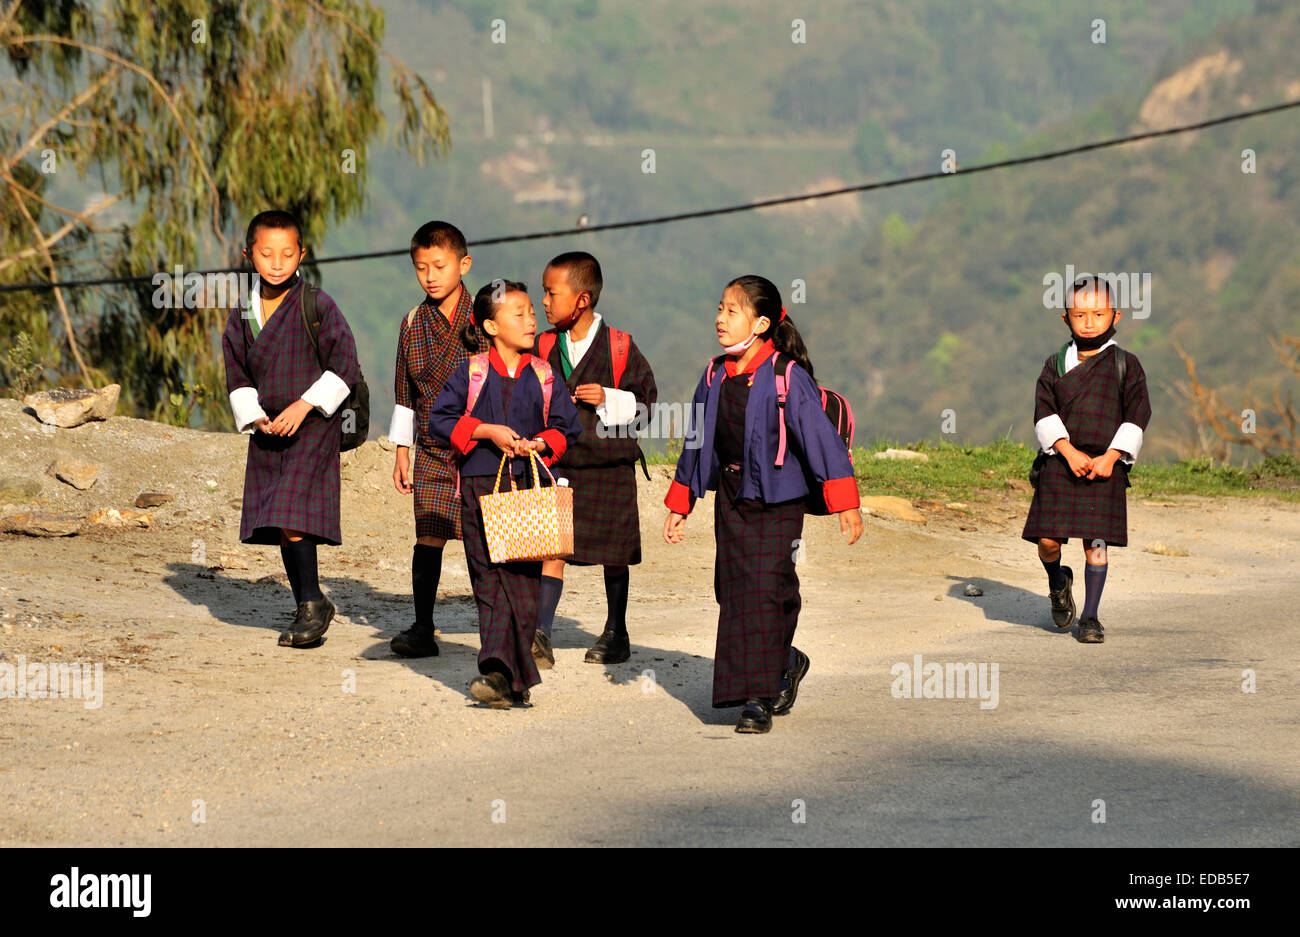 Kids wearing traditional school uniforms, Trongsa, Bhutan - Stock Image